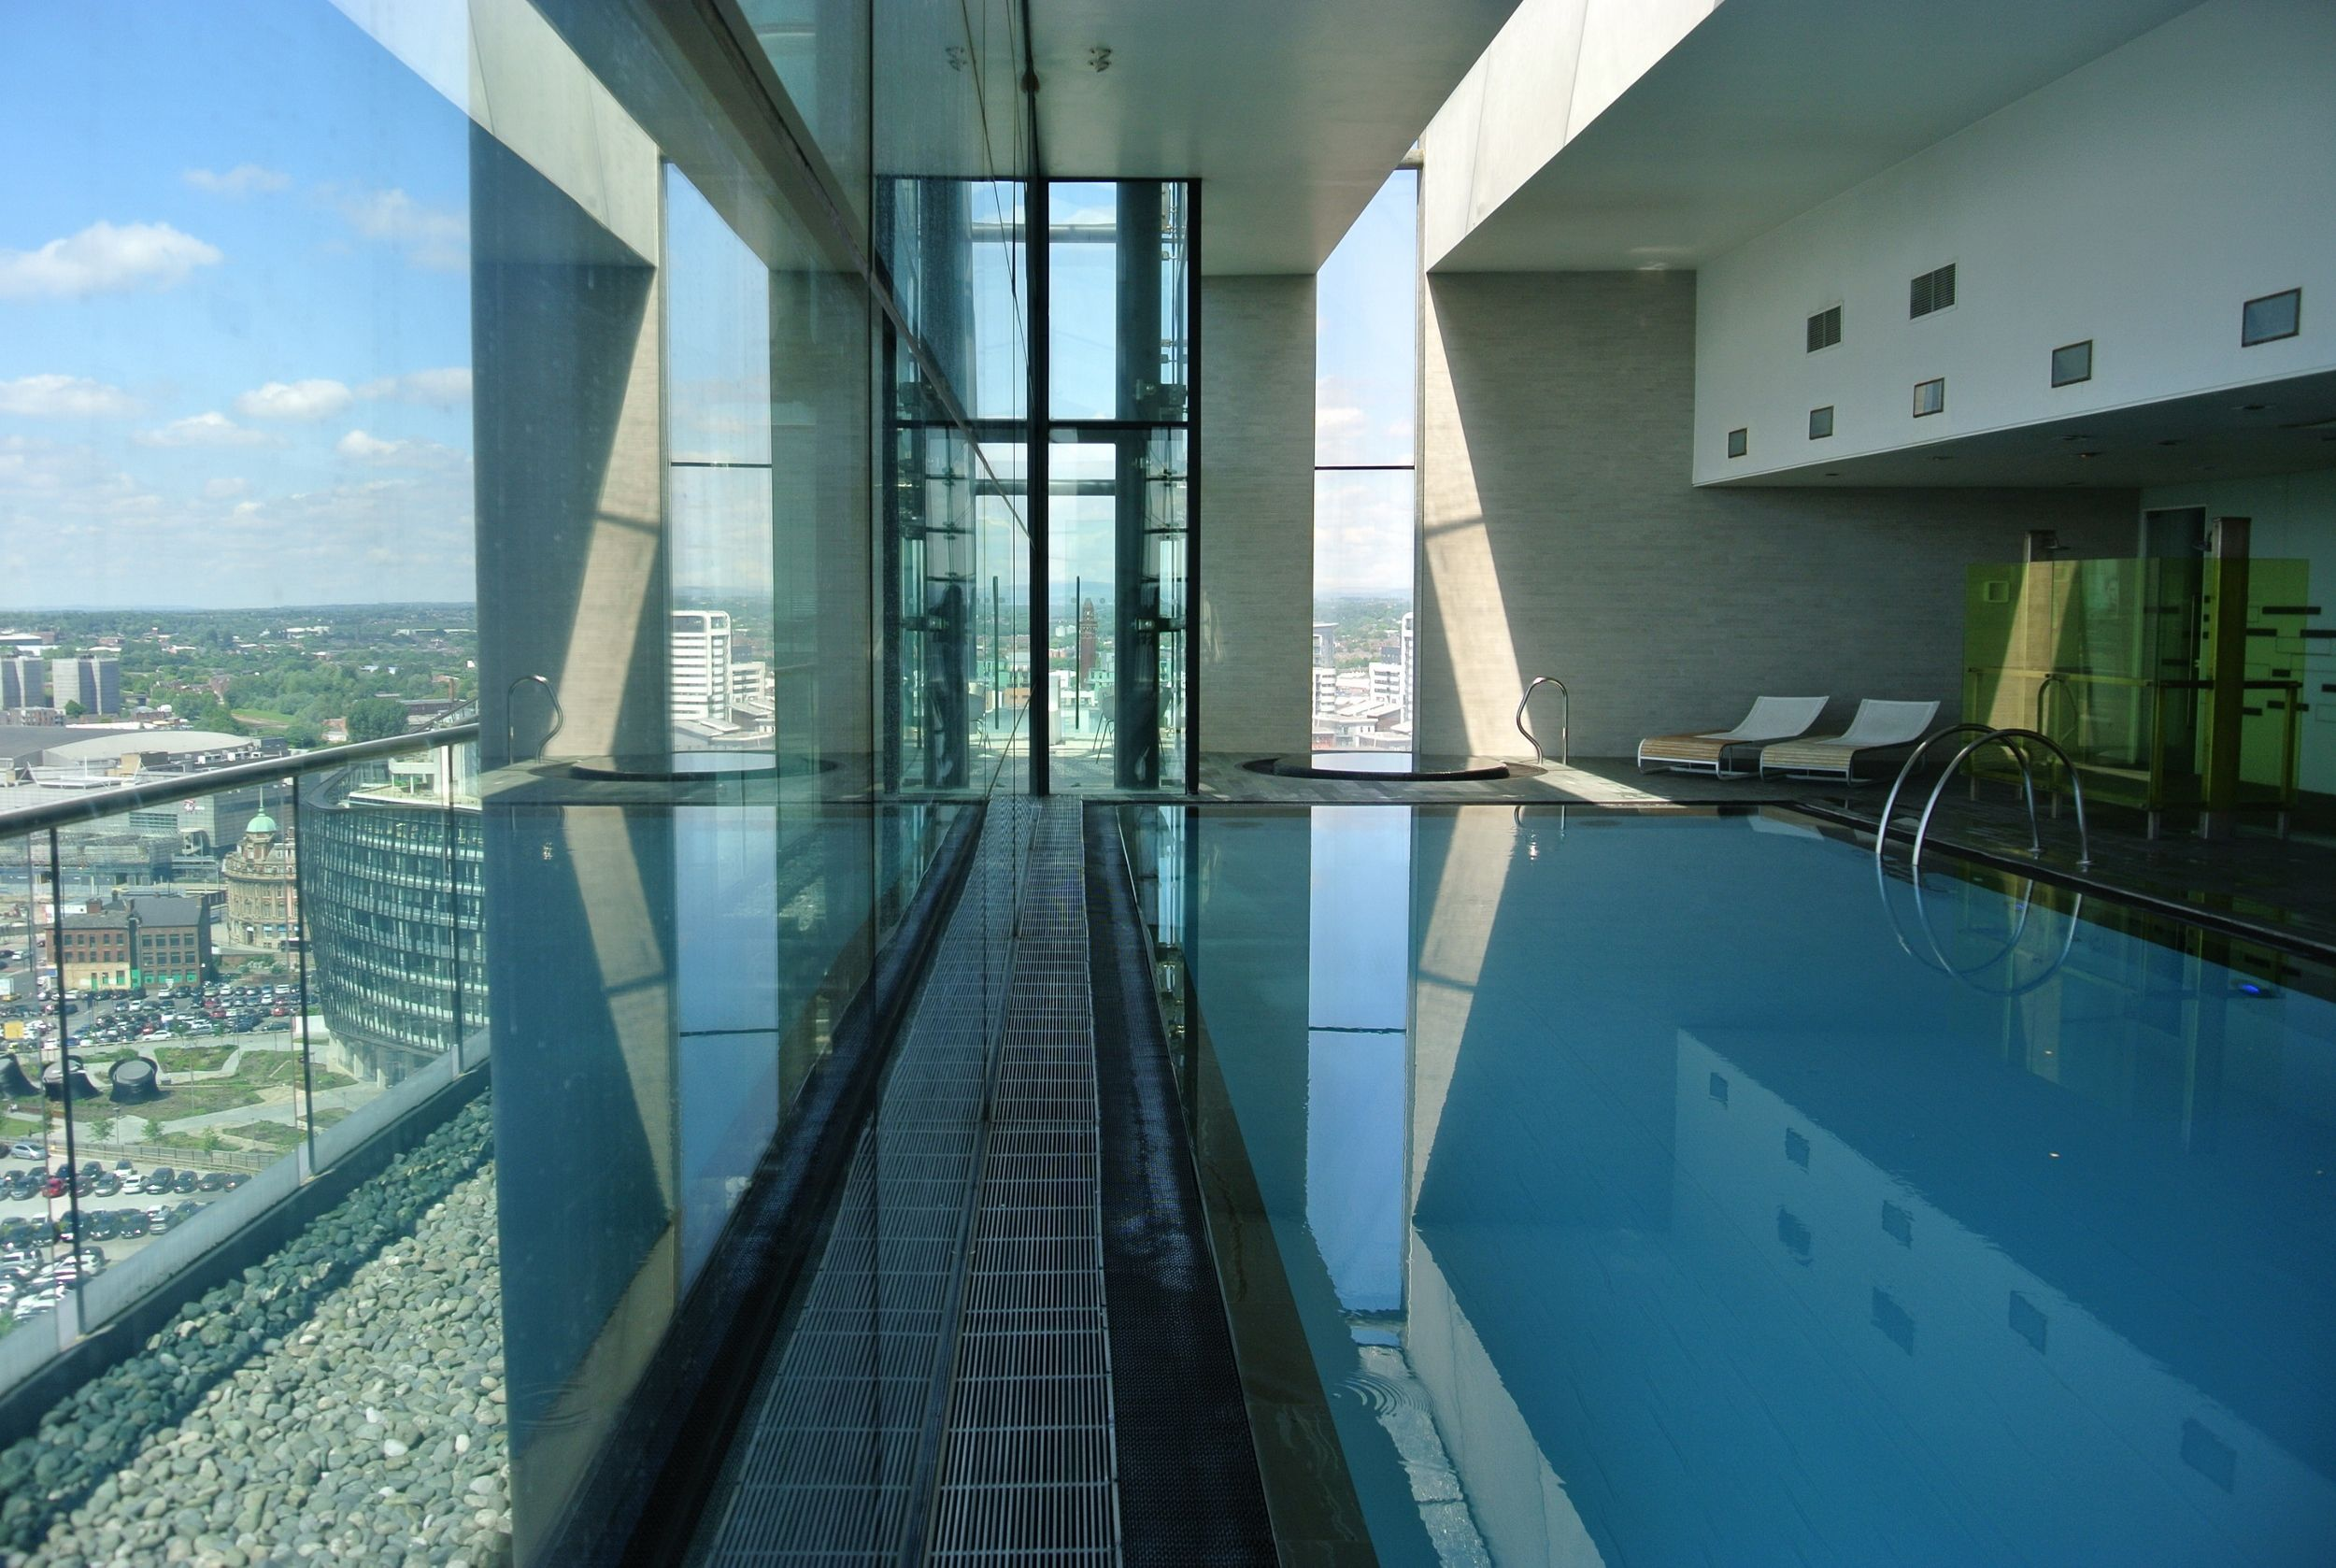 Discover Ideas About Manchester City Centre Swimming Pool At Skyline Central 2